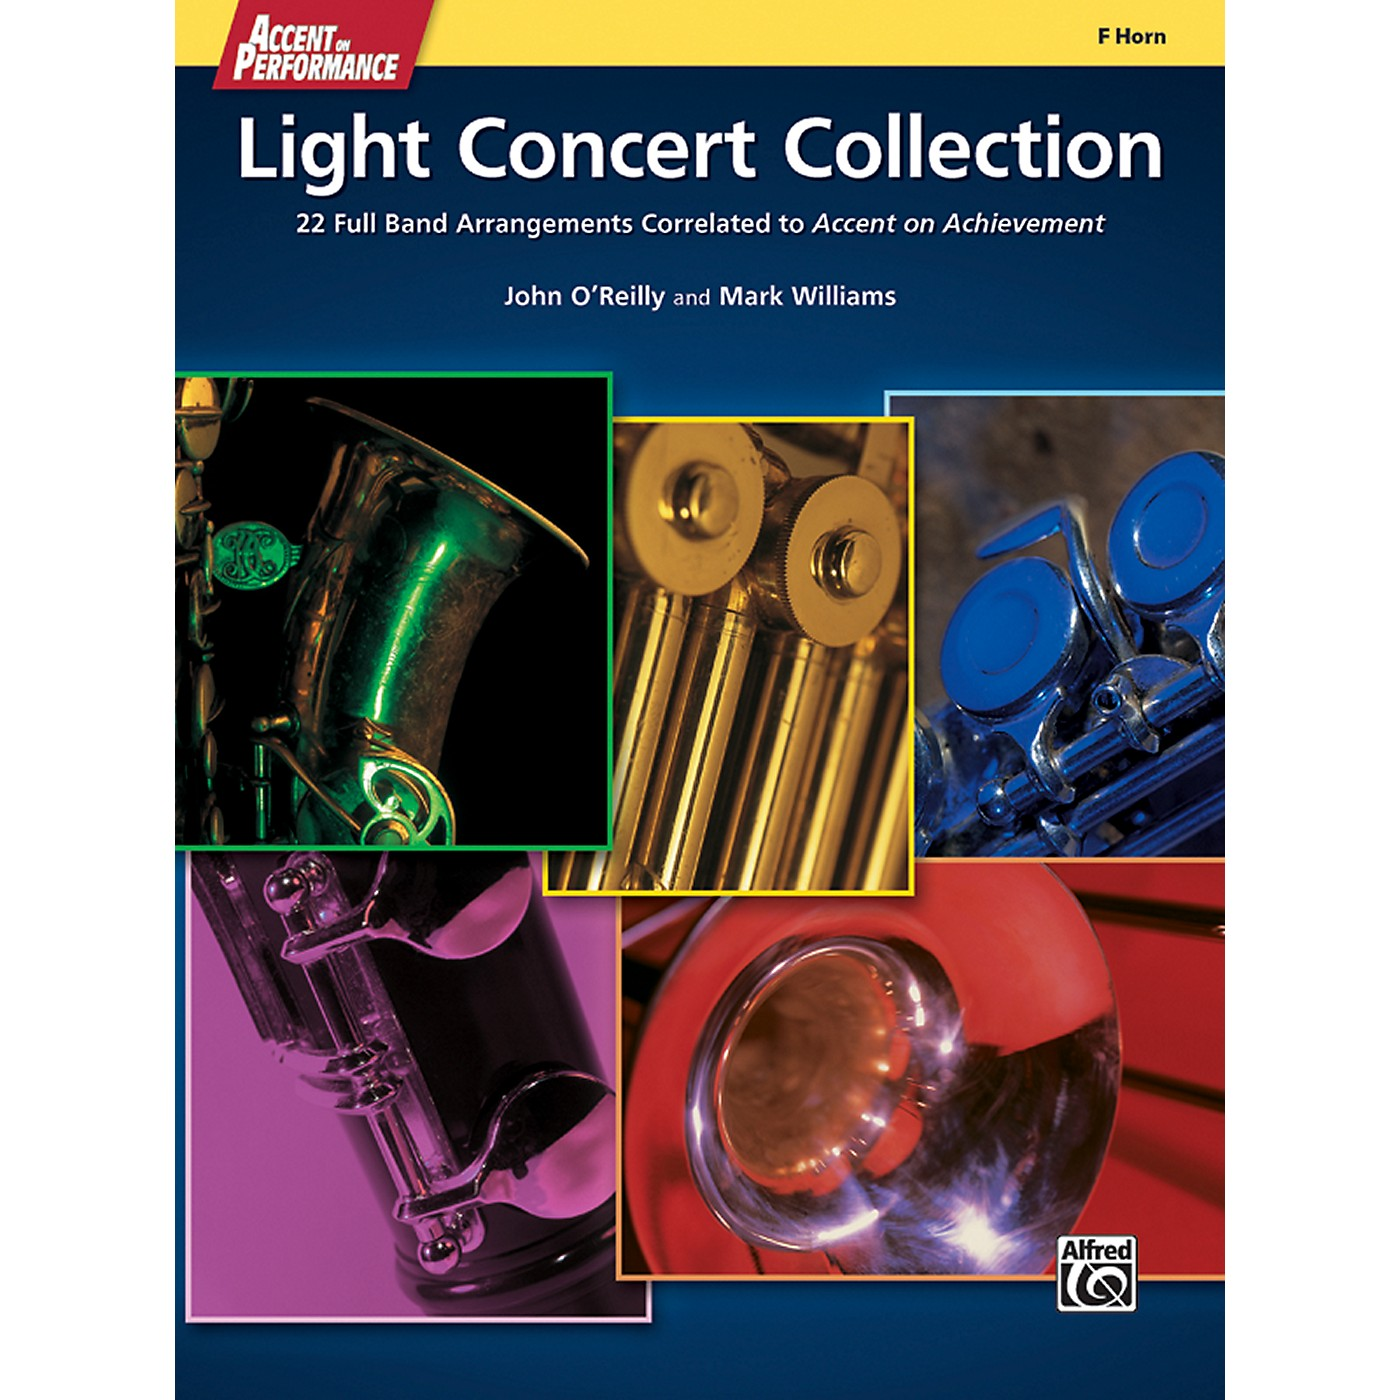 Alfred Accent on Performance Light Concert Collection French Horn Book thumbnail